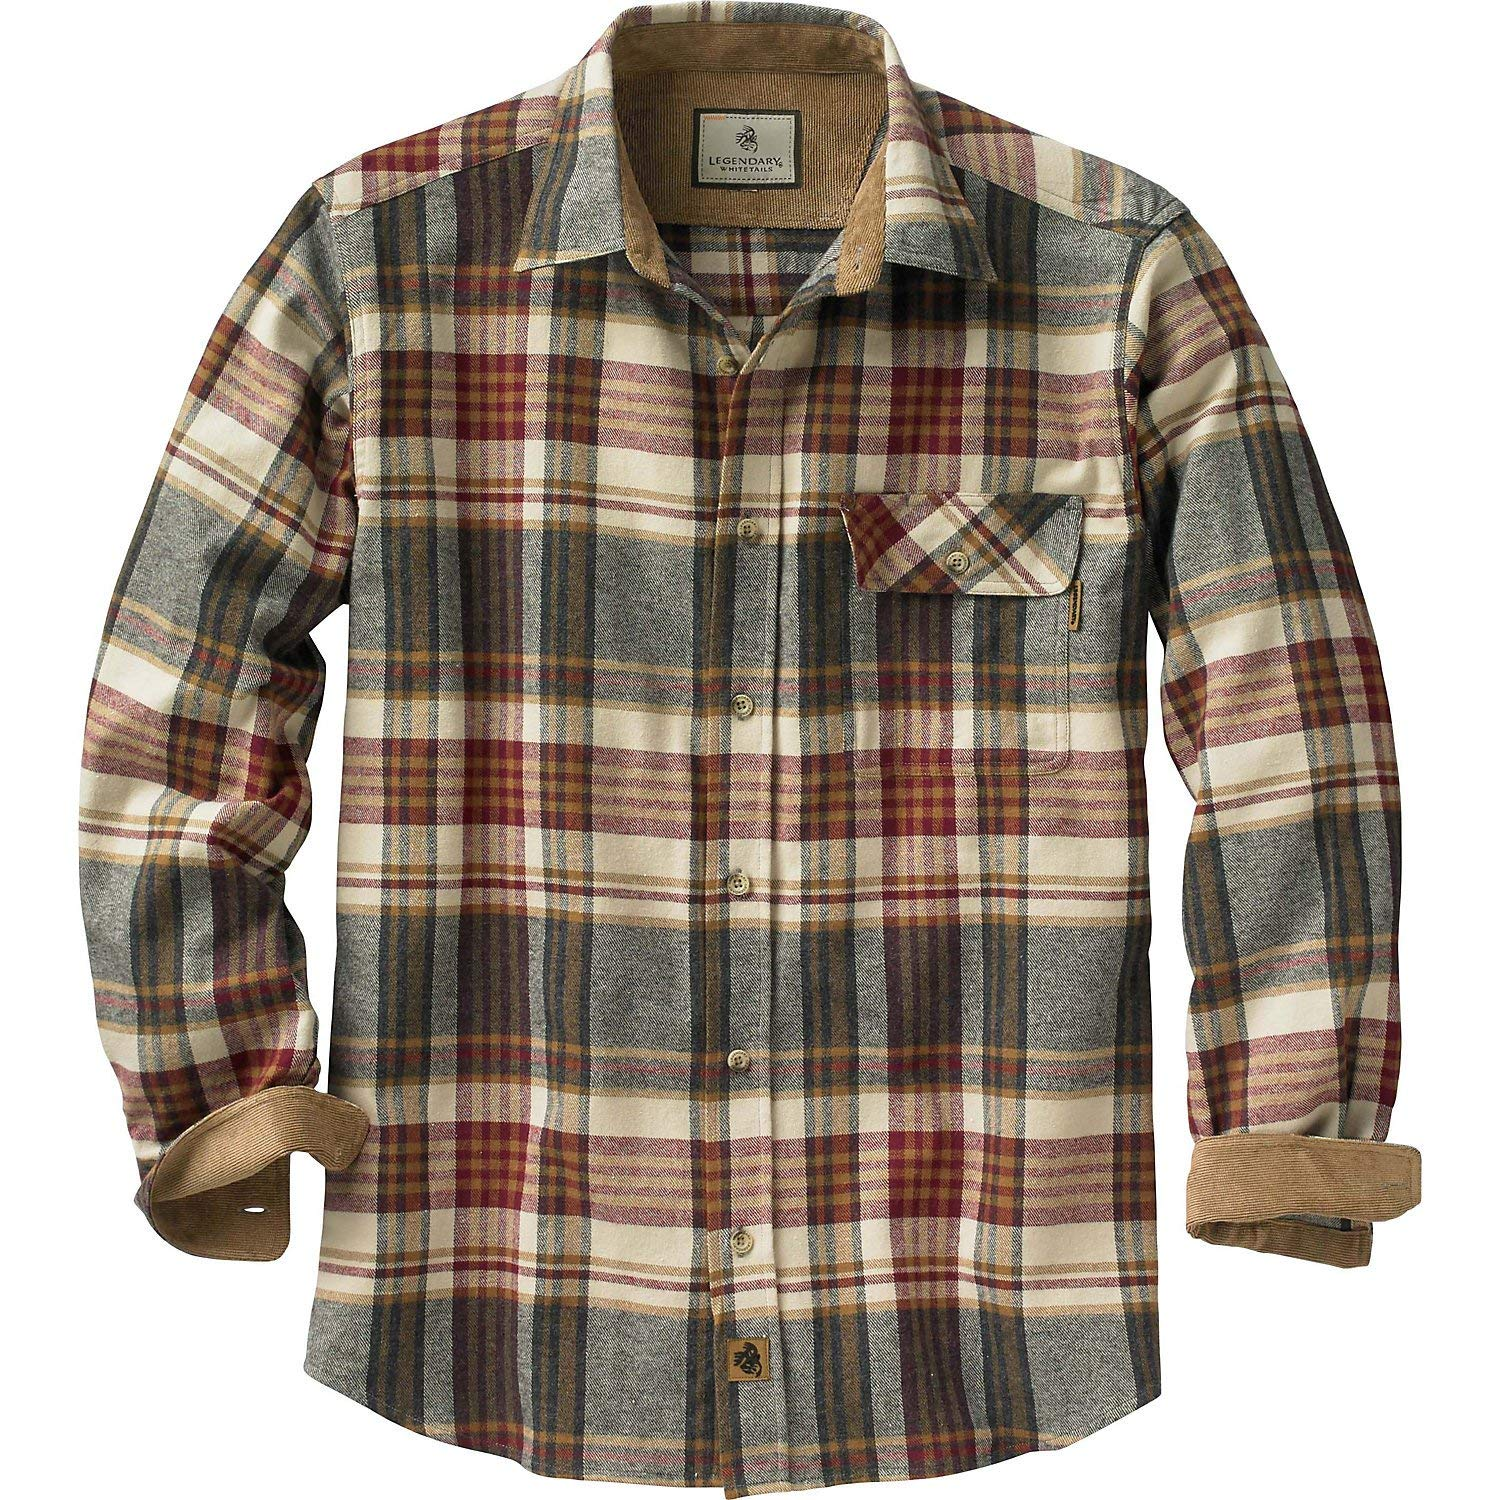 Flannel shirt that looks good + feels good.